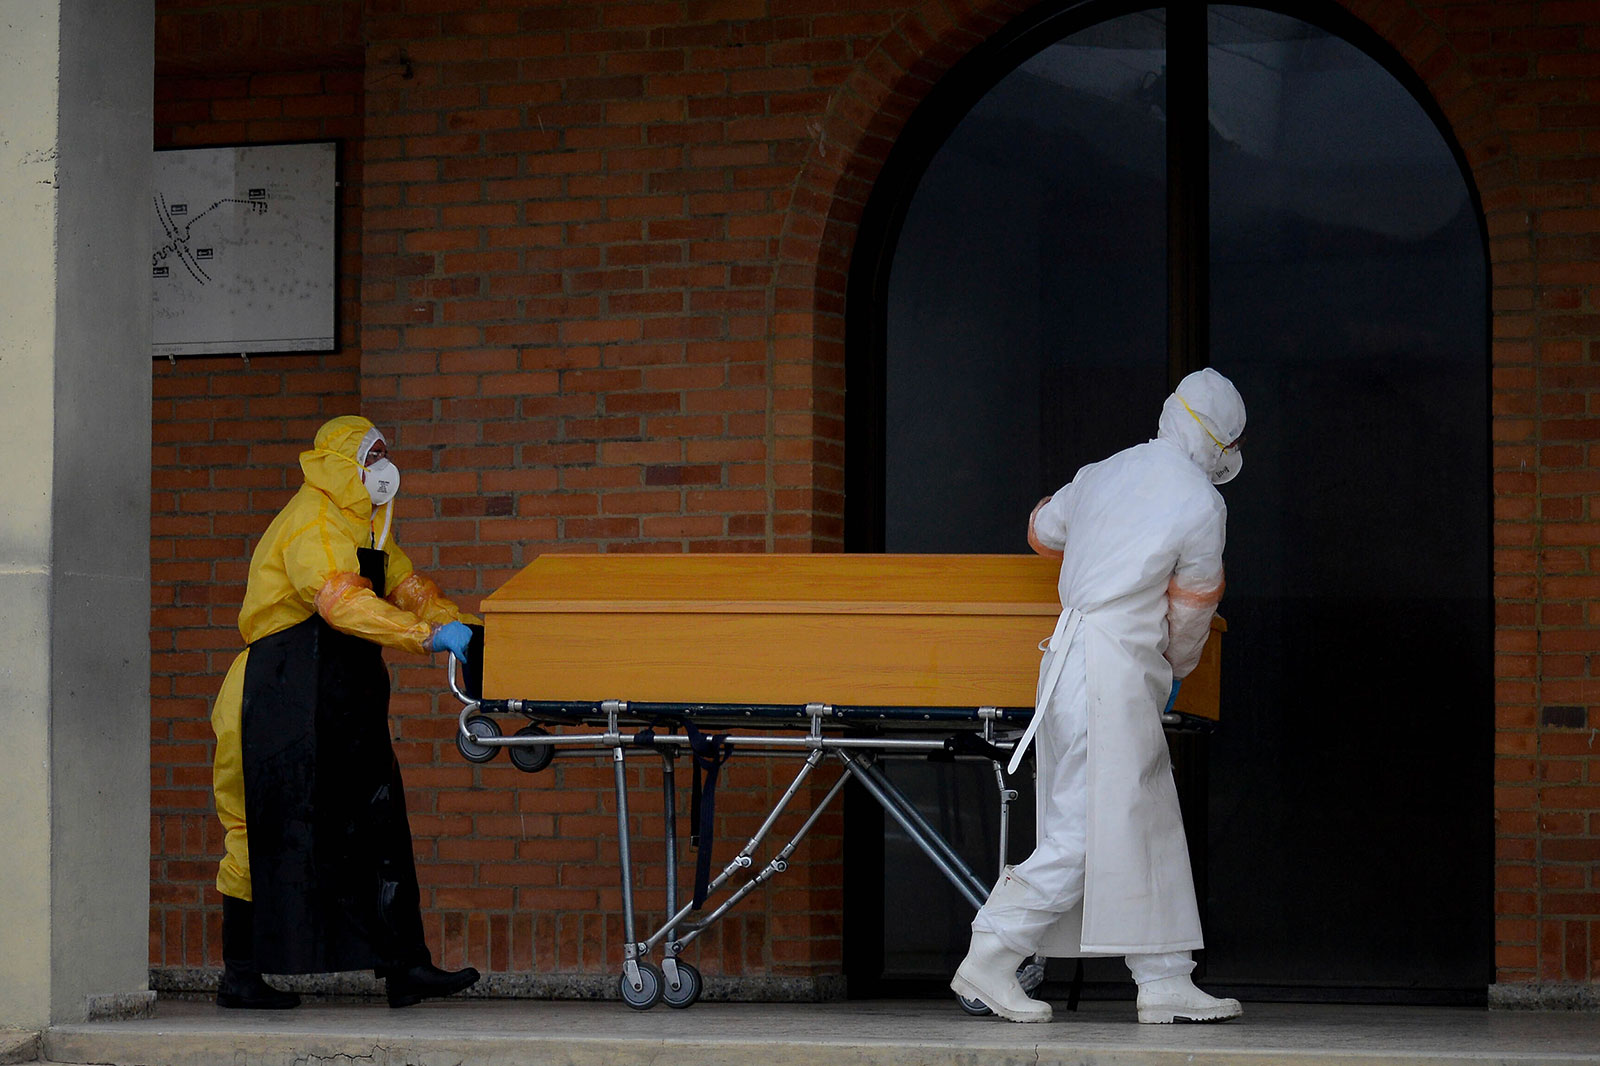 Funeral workers prepare to cremate a coronavirus victim at Serafin cemetary near Bogota, Colombia, on July 4.